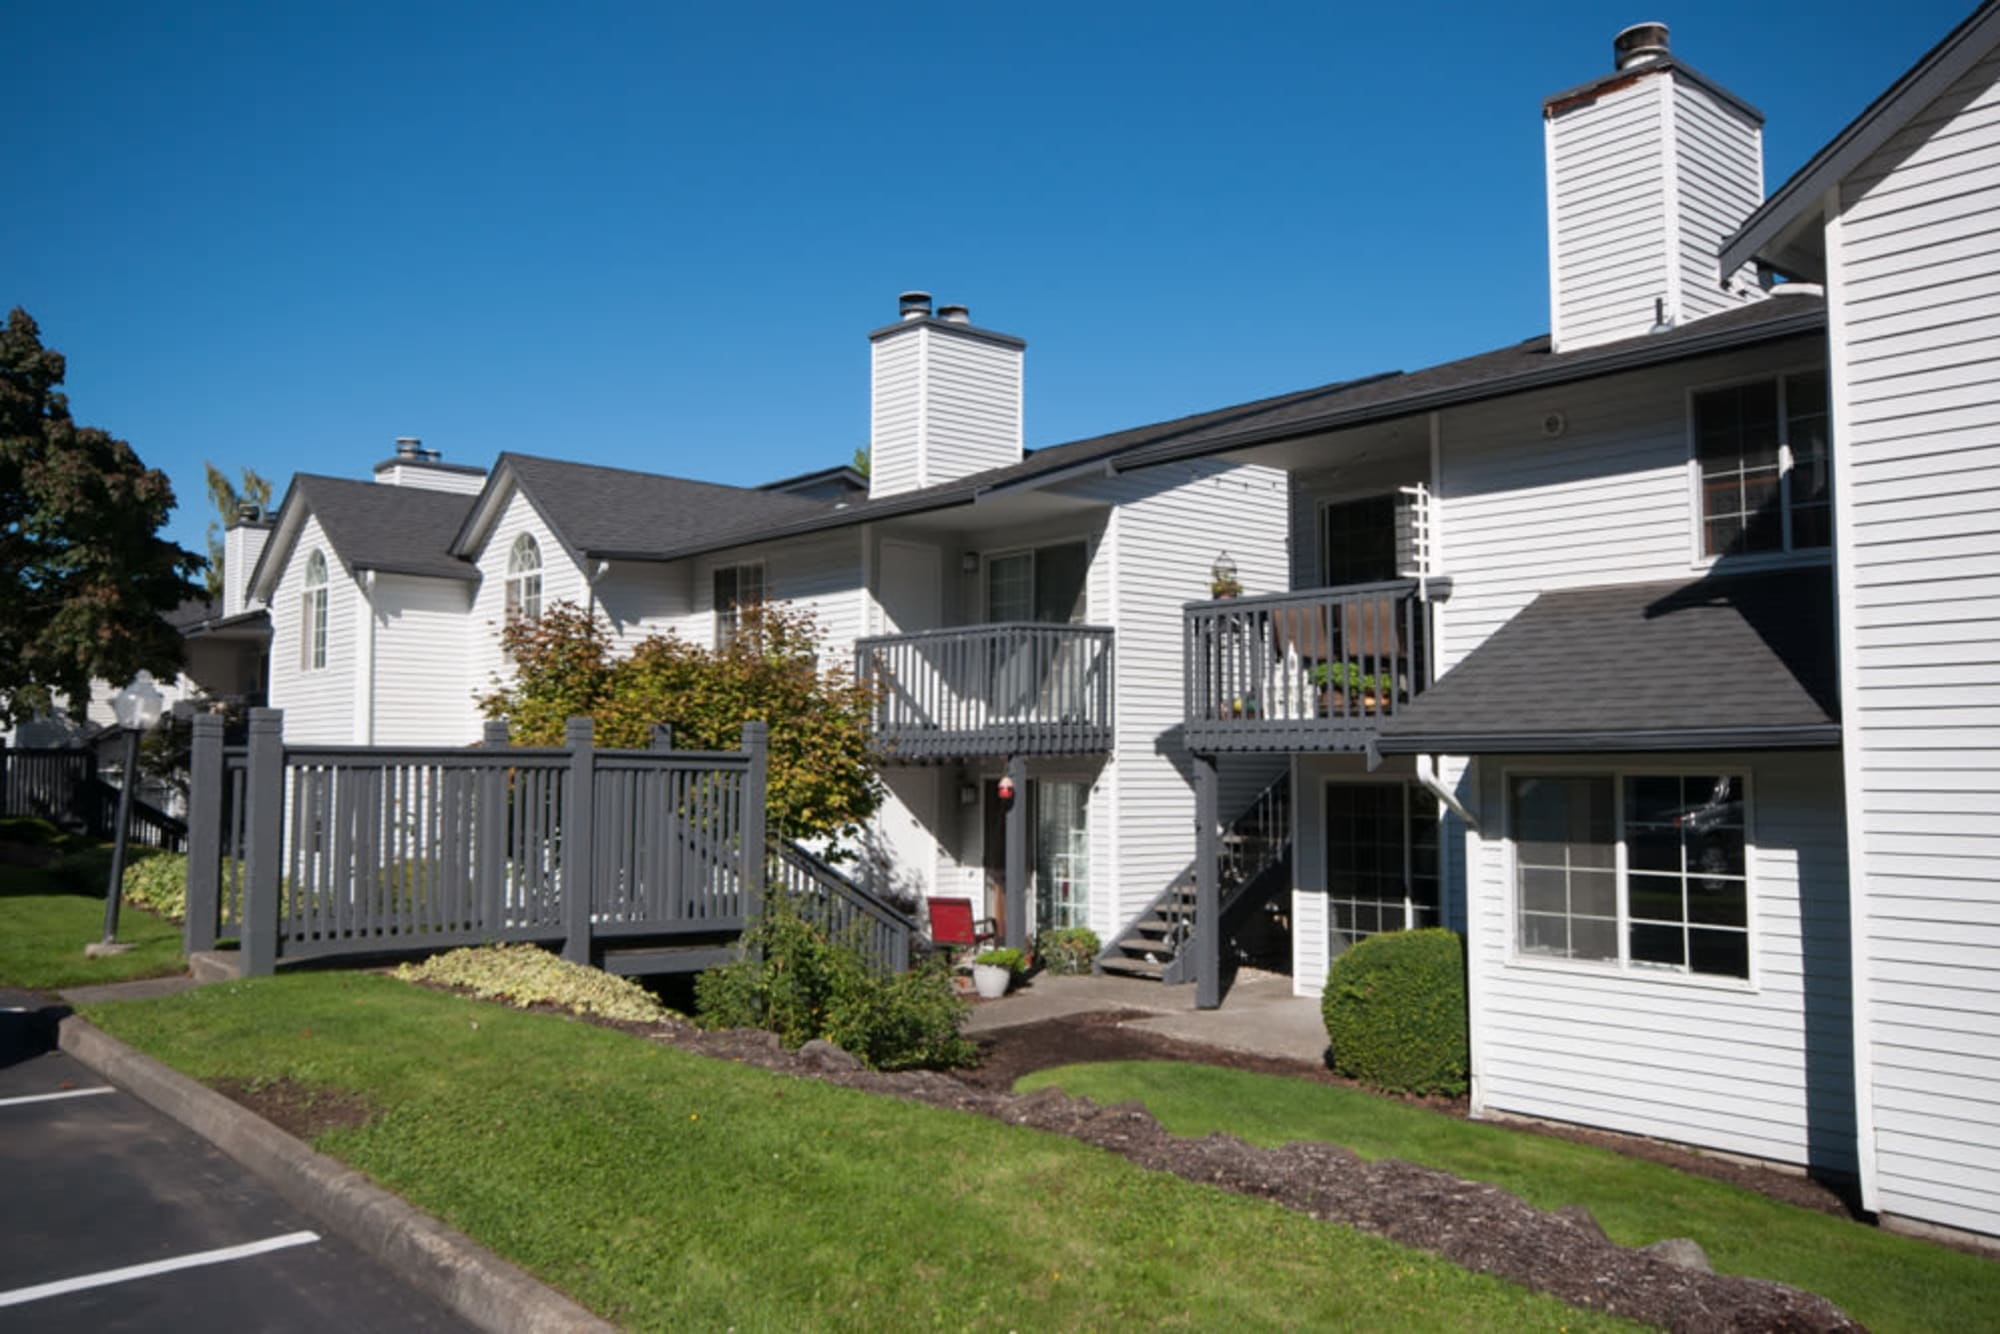 Patios in the sun at Wellington Apartment Homes in Silverdale, Washington